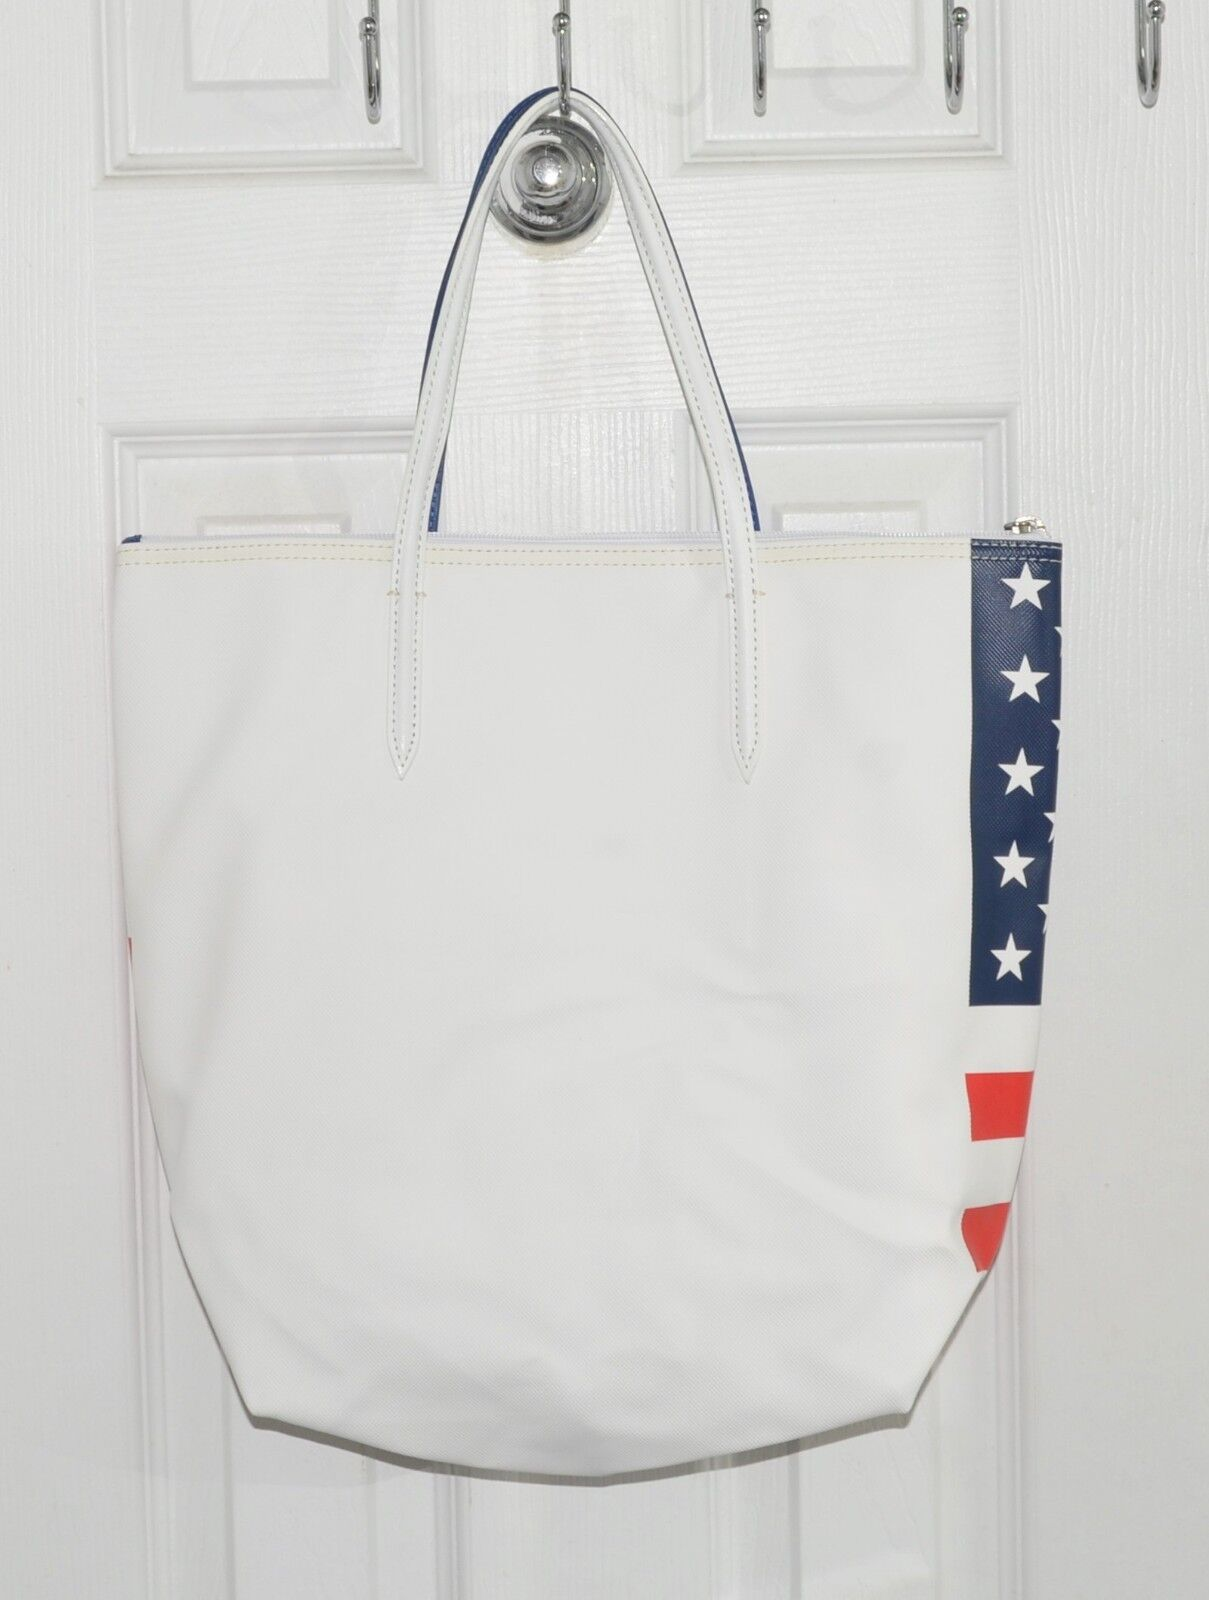 1aabf73635 ... Lacoste Concept Flag America USA Tote Bag Red White Blue Stars Stripes  NF0361FL фото ...